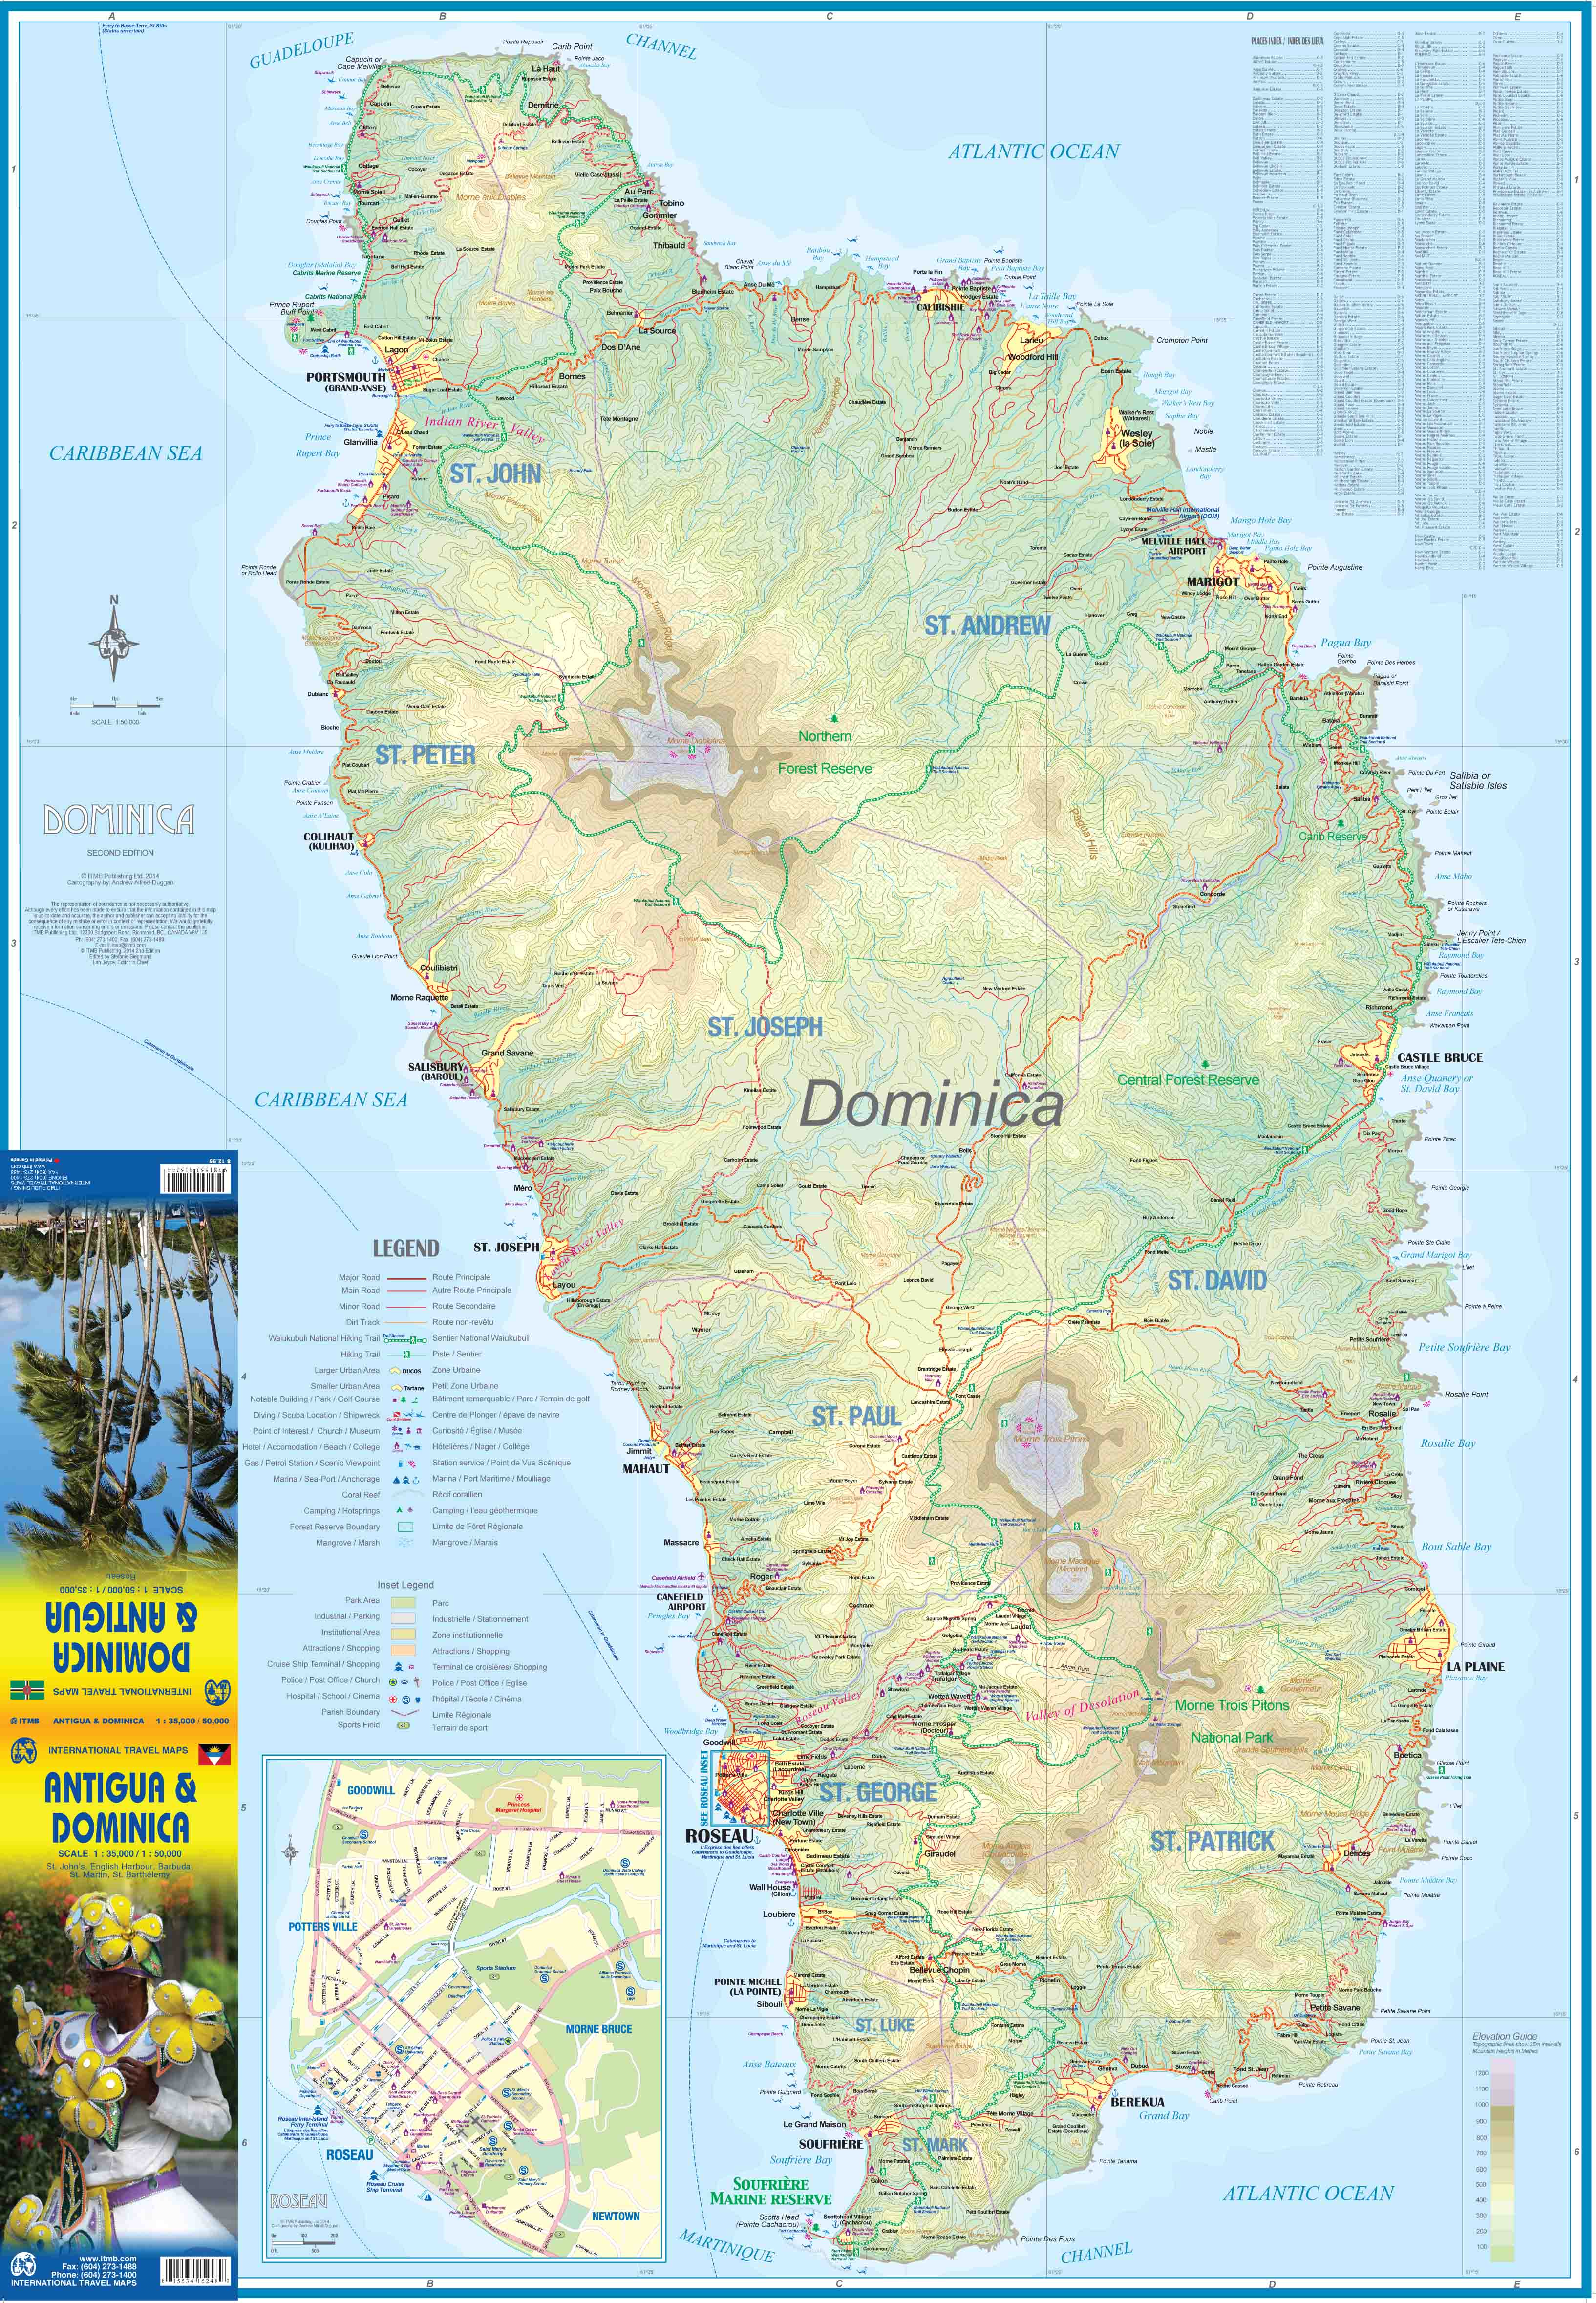 Maps For Travel City Maps Road Maps Guides Globes Topographic - Map of dominica caribbean sea